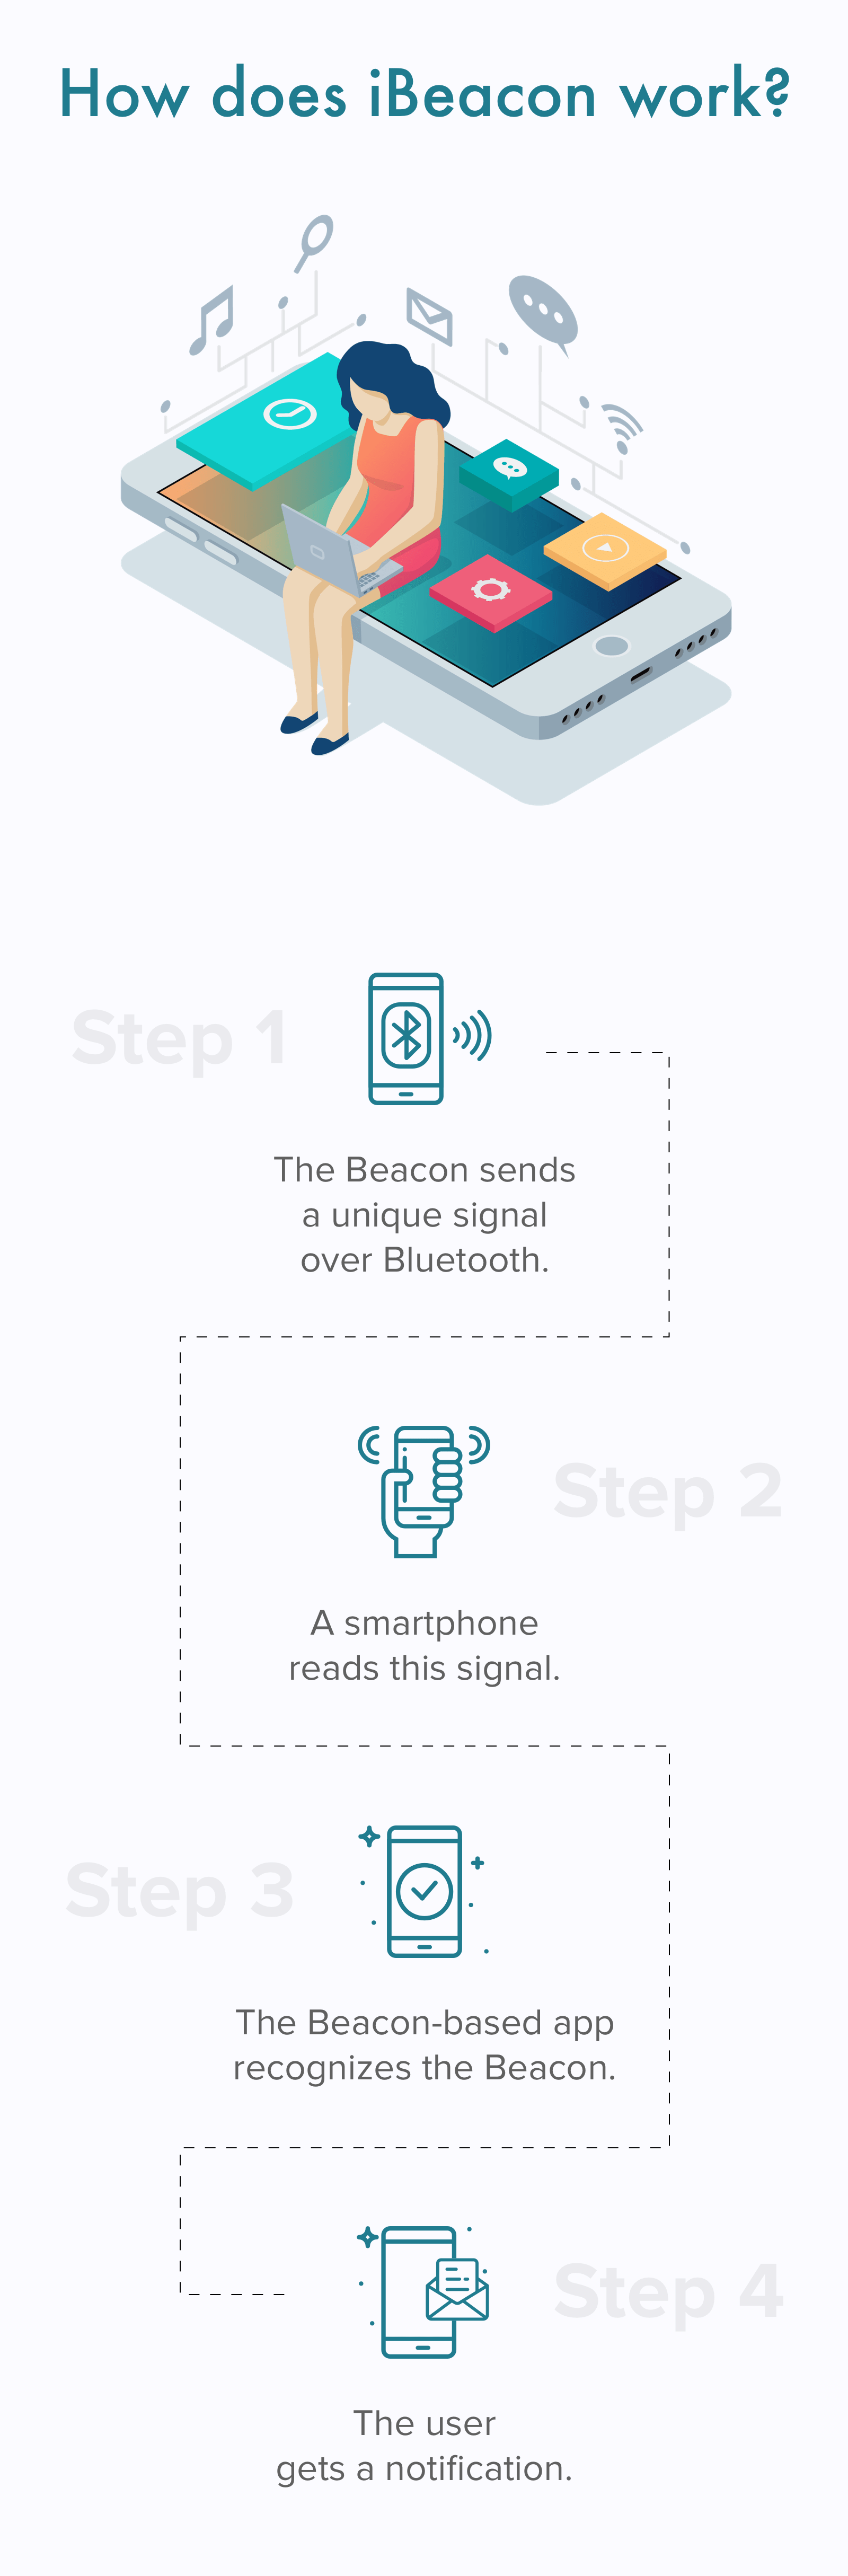 iBeacon and how it works